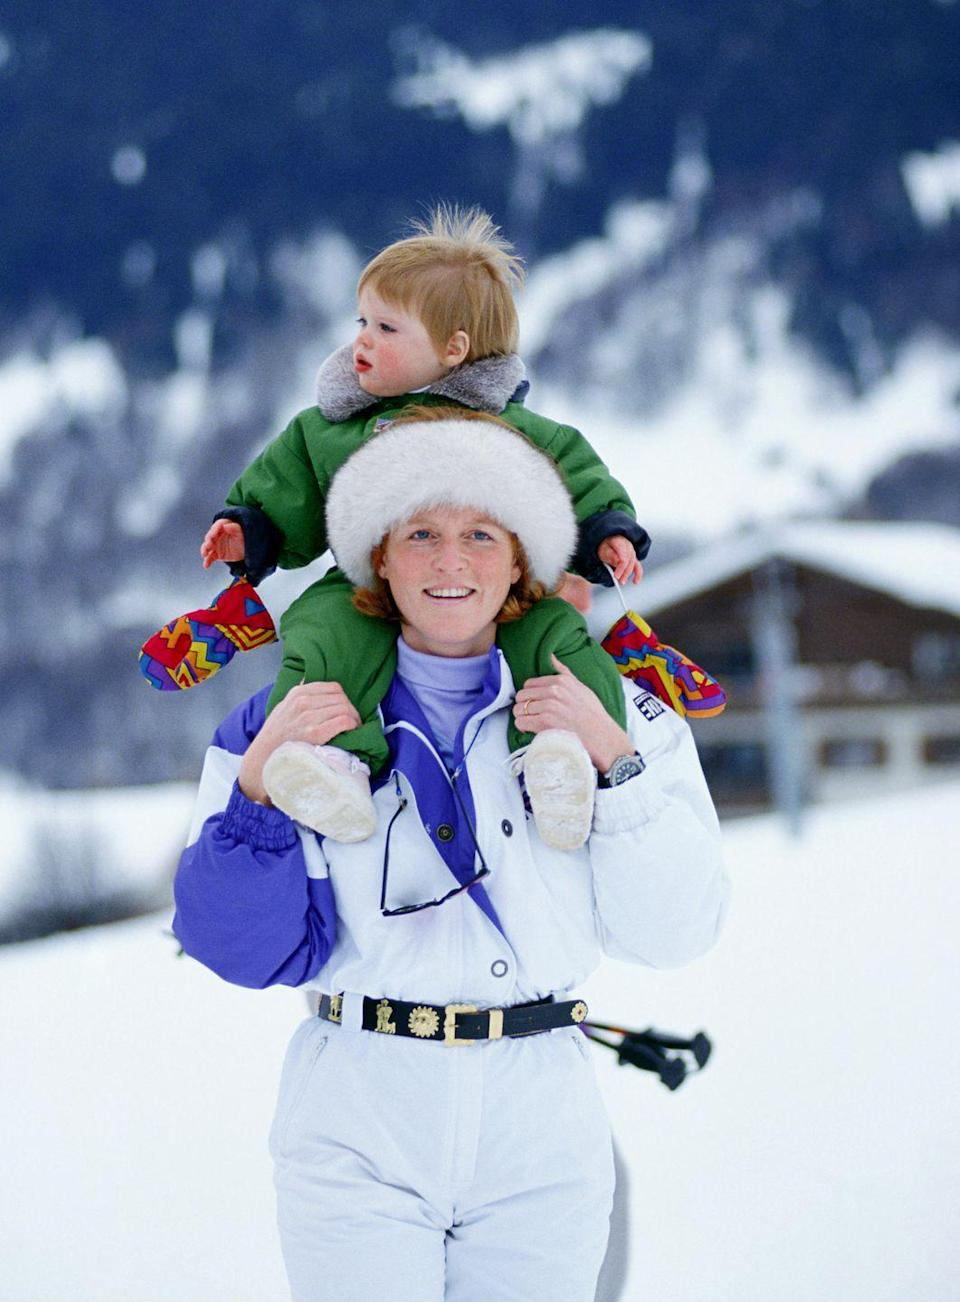 <p>Eugenie sits on her mom's shoulders during a ski vacation in Switzerland.</p>